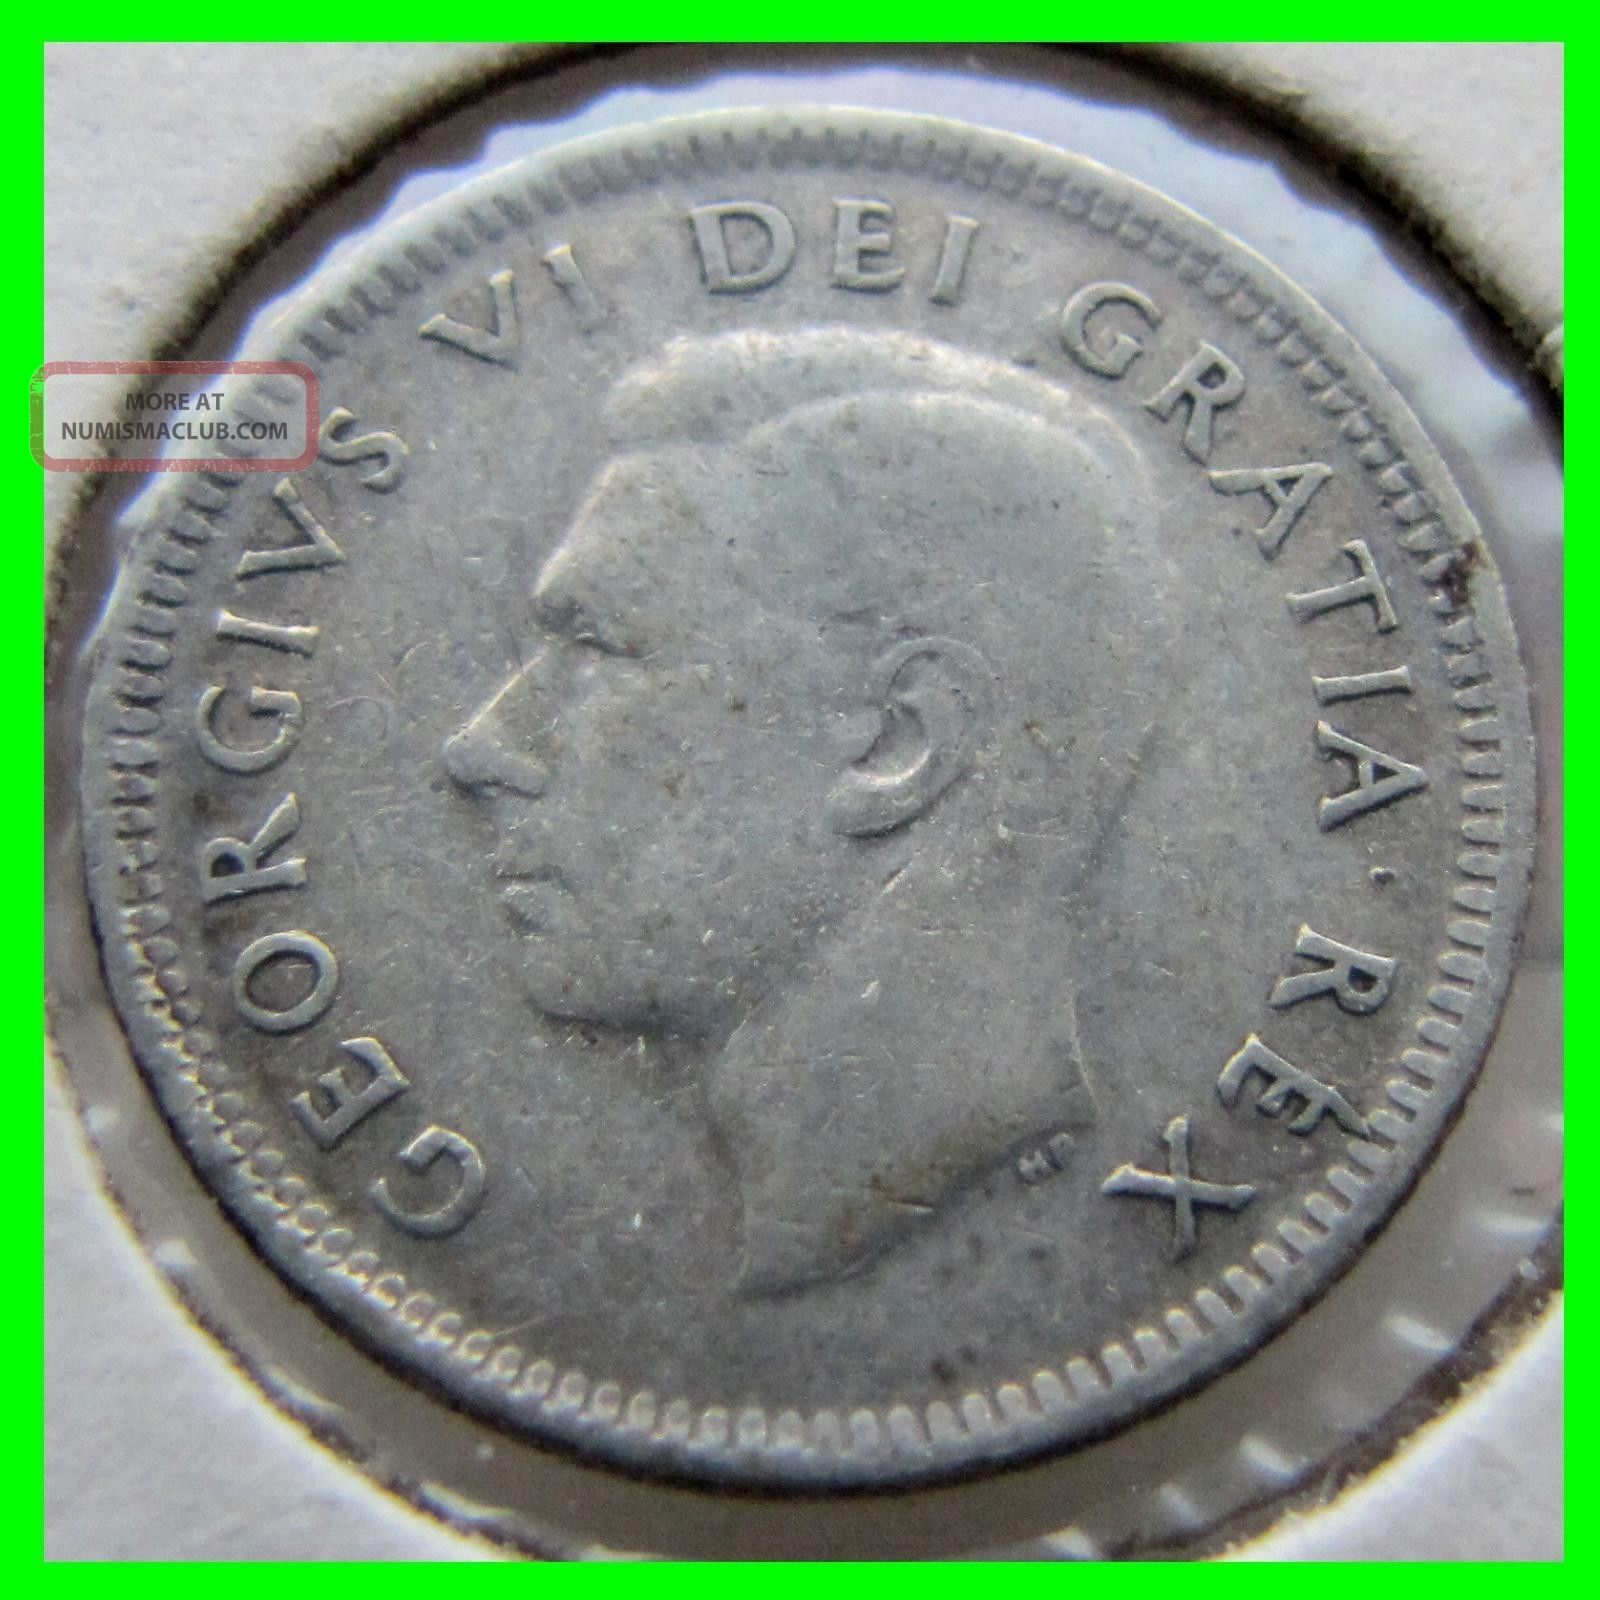 Rare One Of A Kind 1951 Canada Canadian Dime Double Die